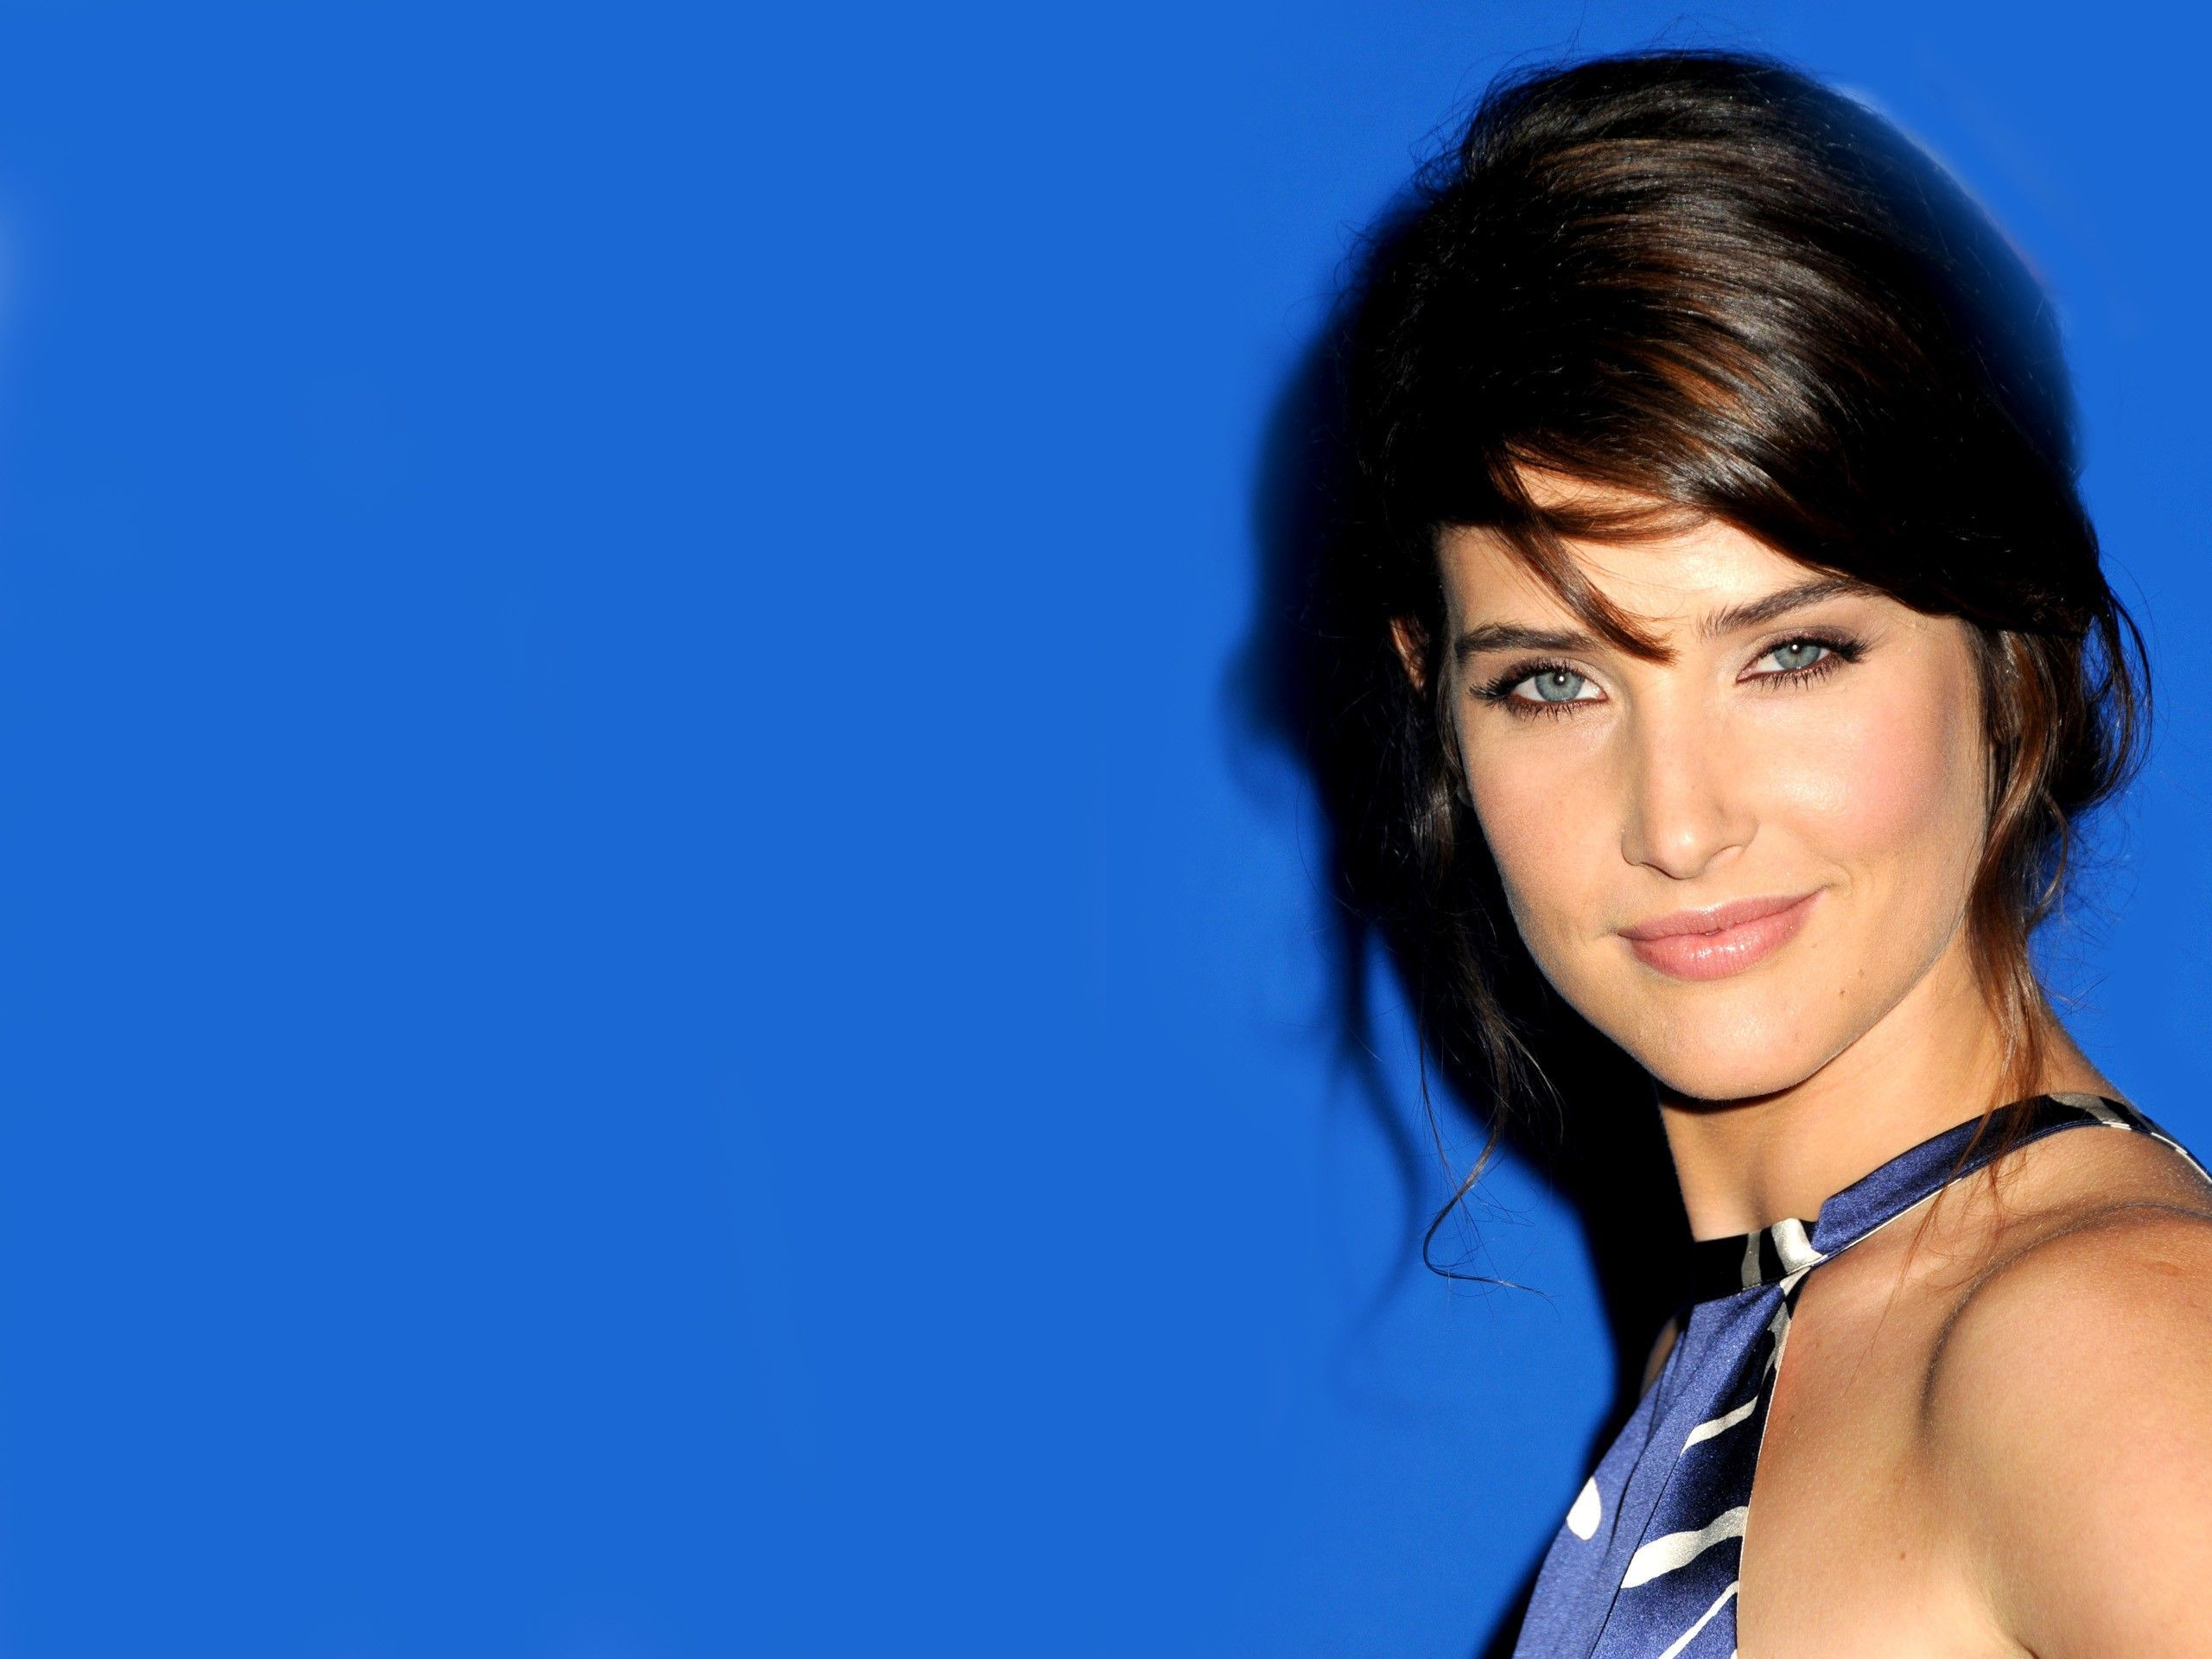 Cute Wallpapers For Girls In The Fall Cobie Smulders Wallpaper Hd Pixelstalk Net